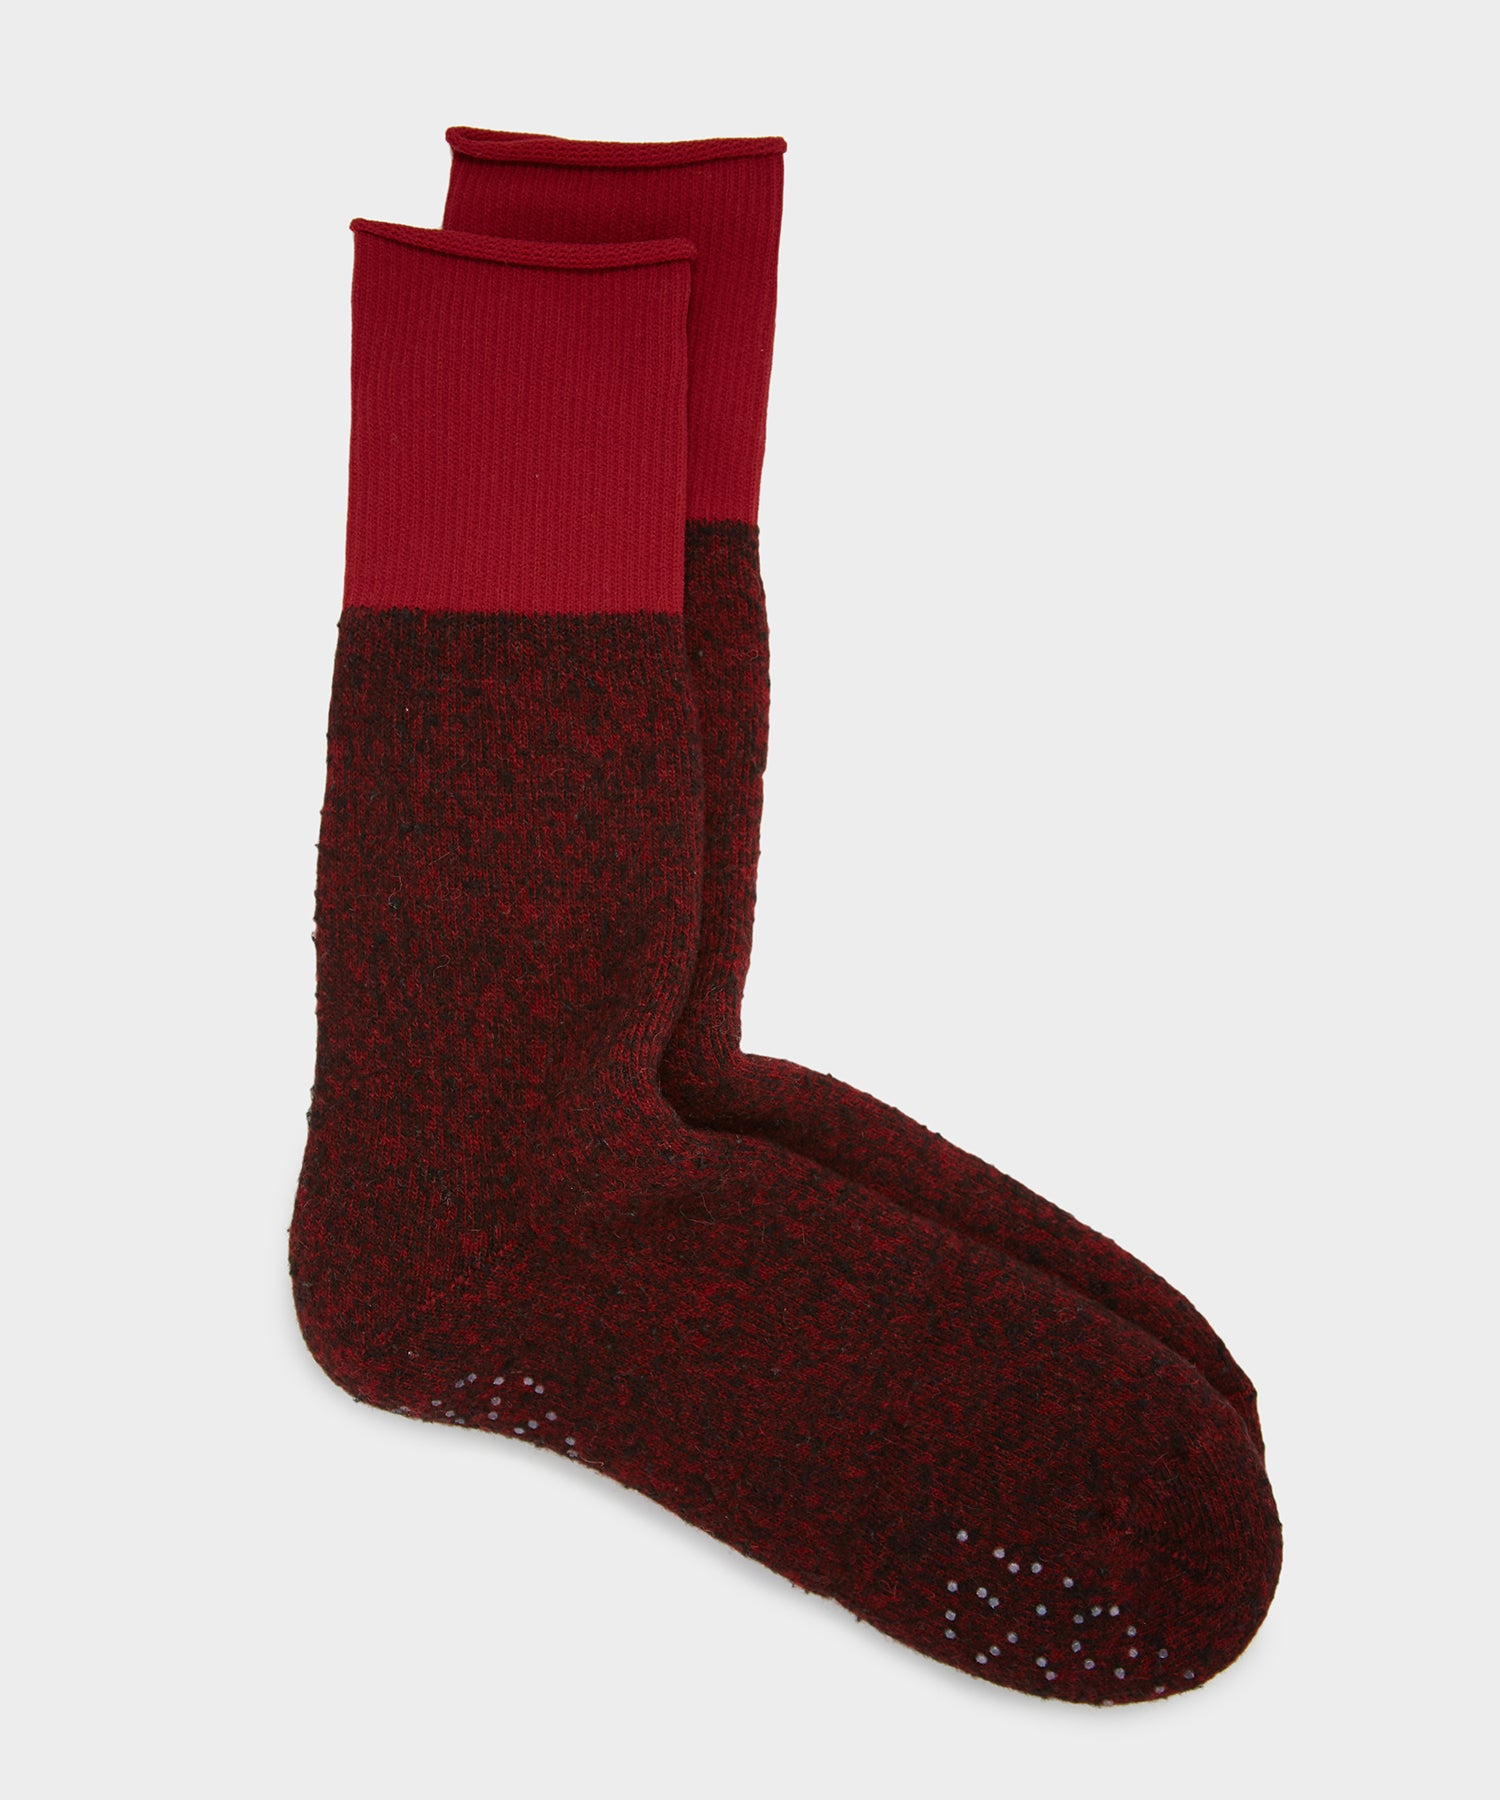 RoToTo Thermal Fleece Sock In Red